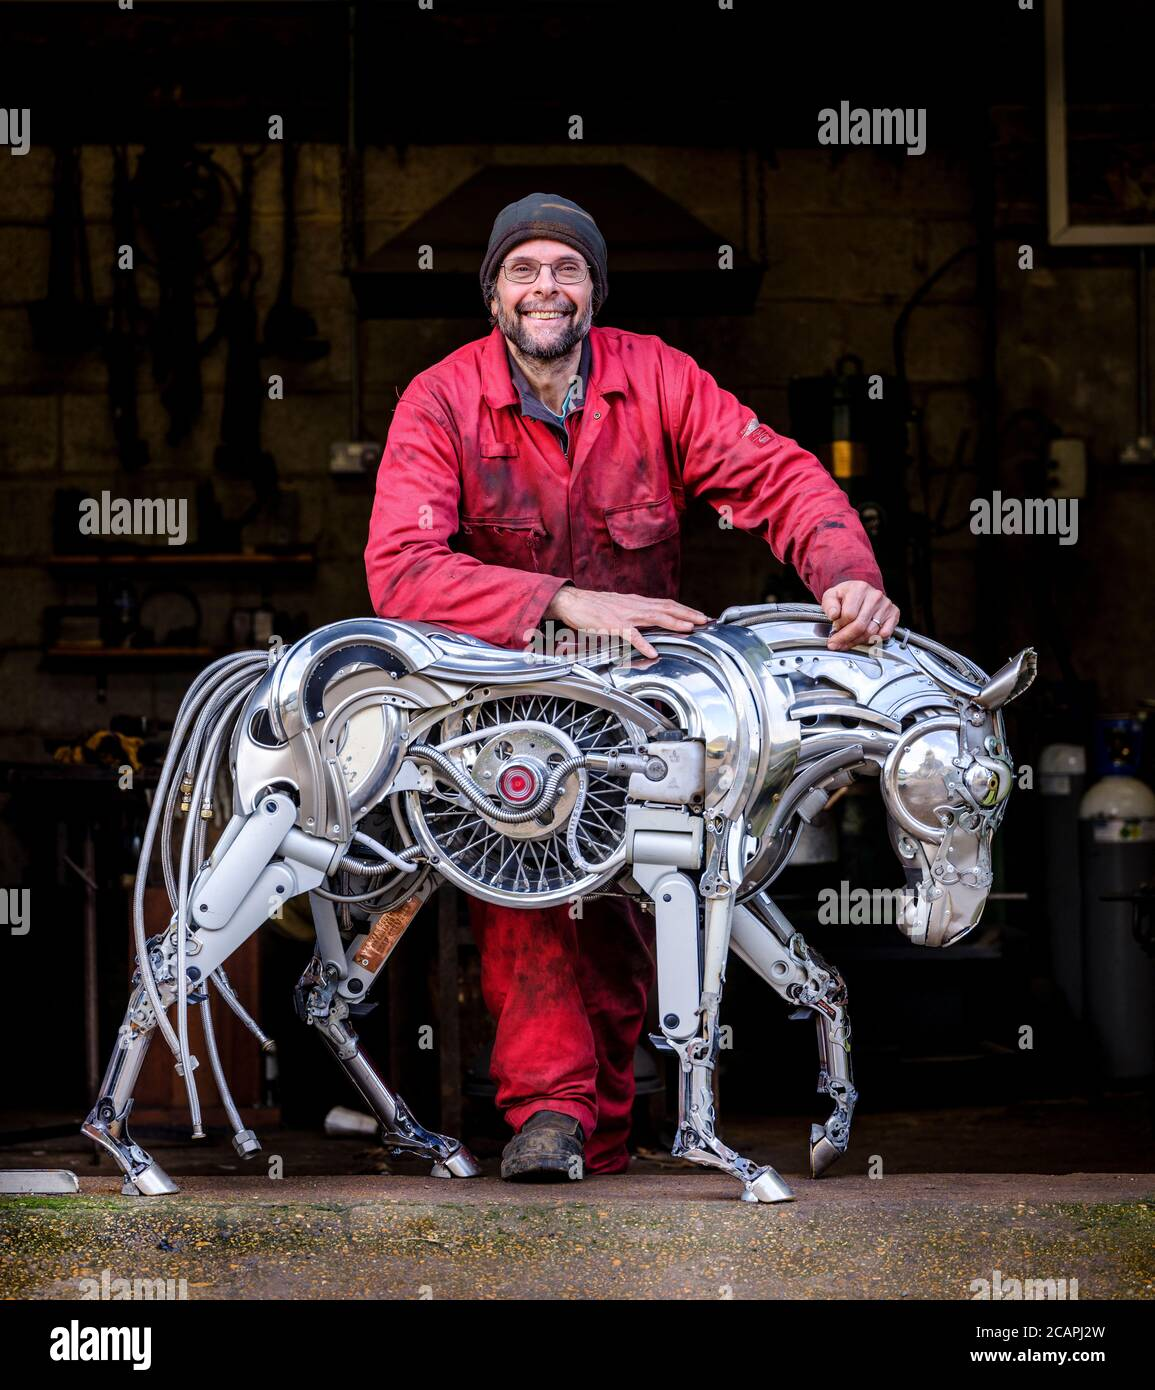 Artist Ptolemy Elrington at his Portslade studio in East Sussex UK where he create sculptures made from car hub caps and other reclaimed car parts. Stock Photo